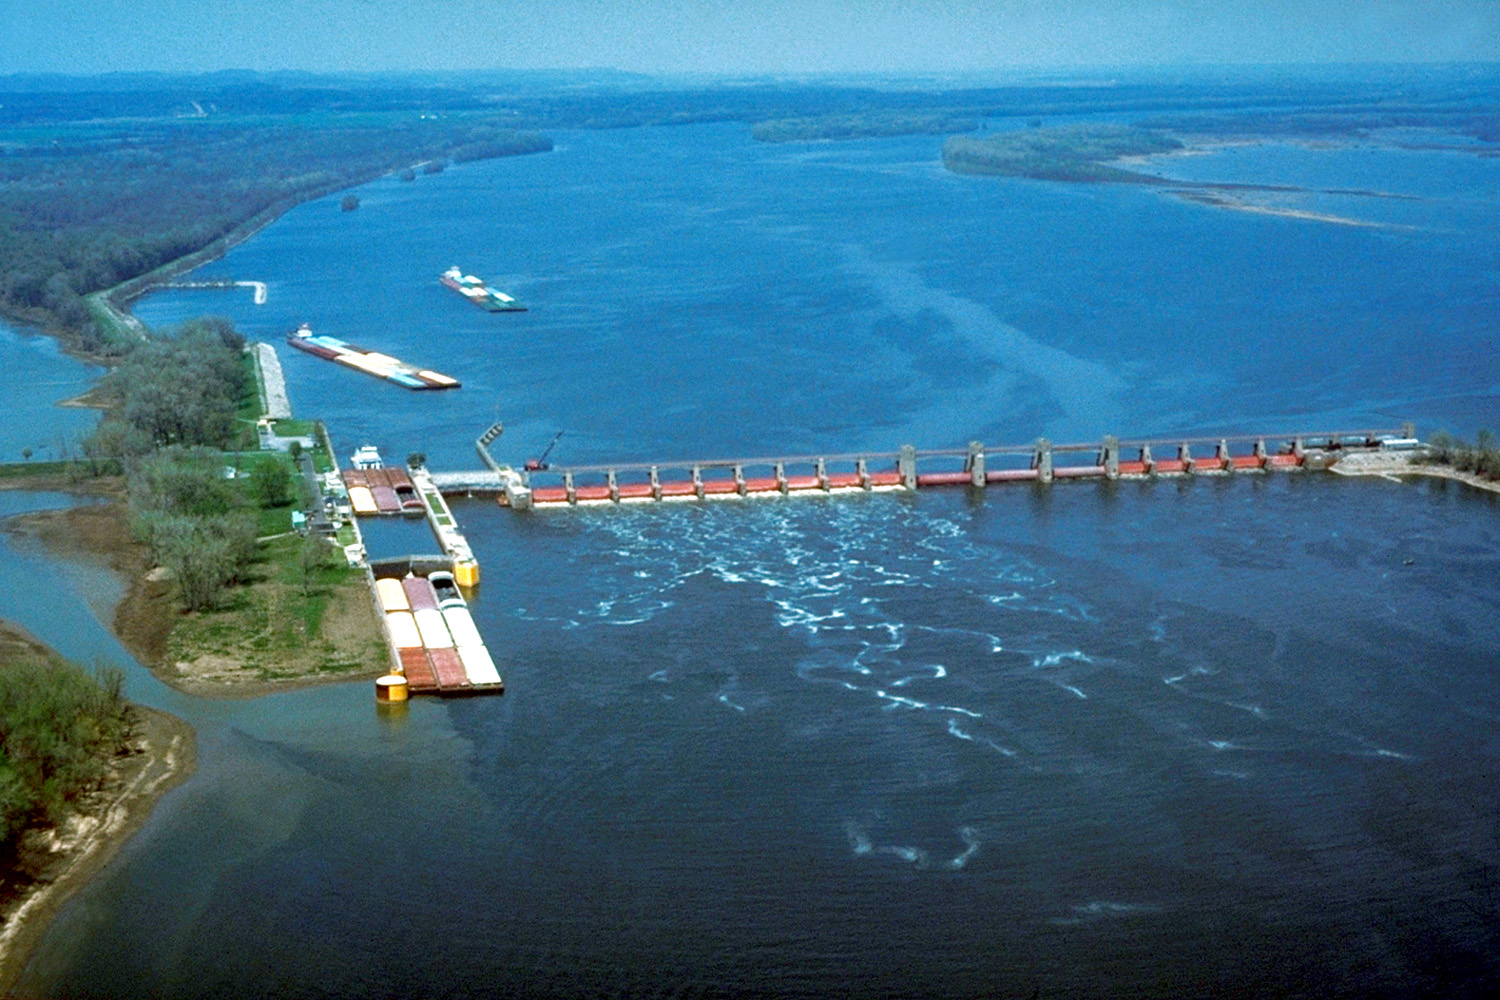 a description of the mississippi river Today, the mississippi river delta's natural cycles of change and rebirth have been constricted by human activities such as leveeing of the river for navigation and flood control, laying the groundwork for today's ecological collapse and land loss.